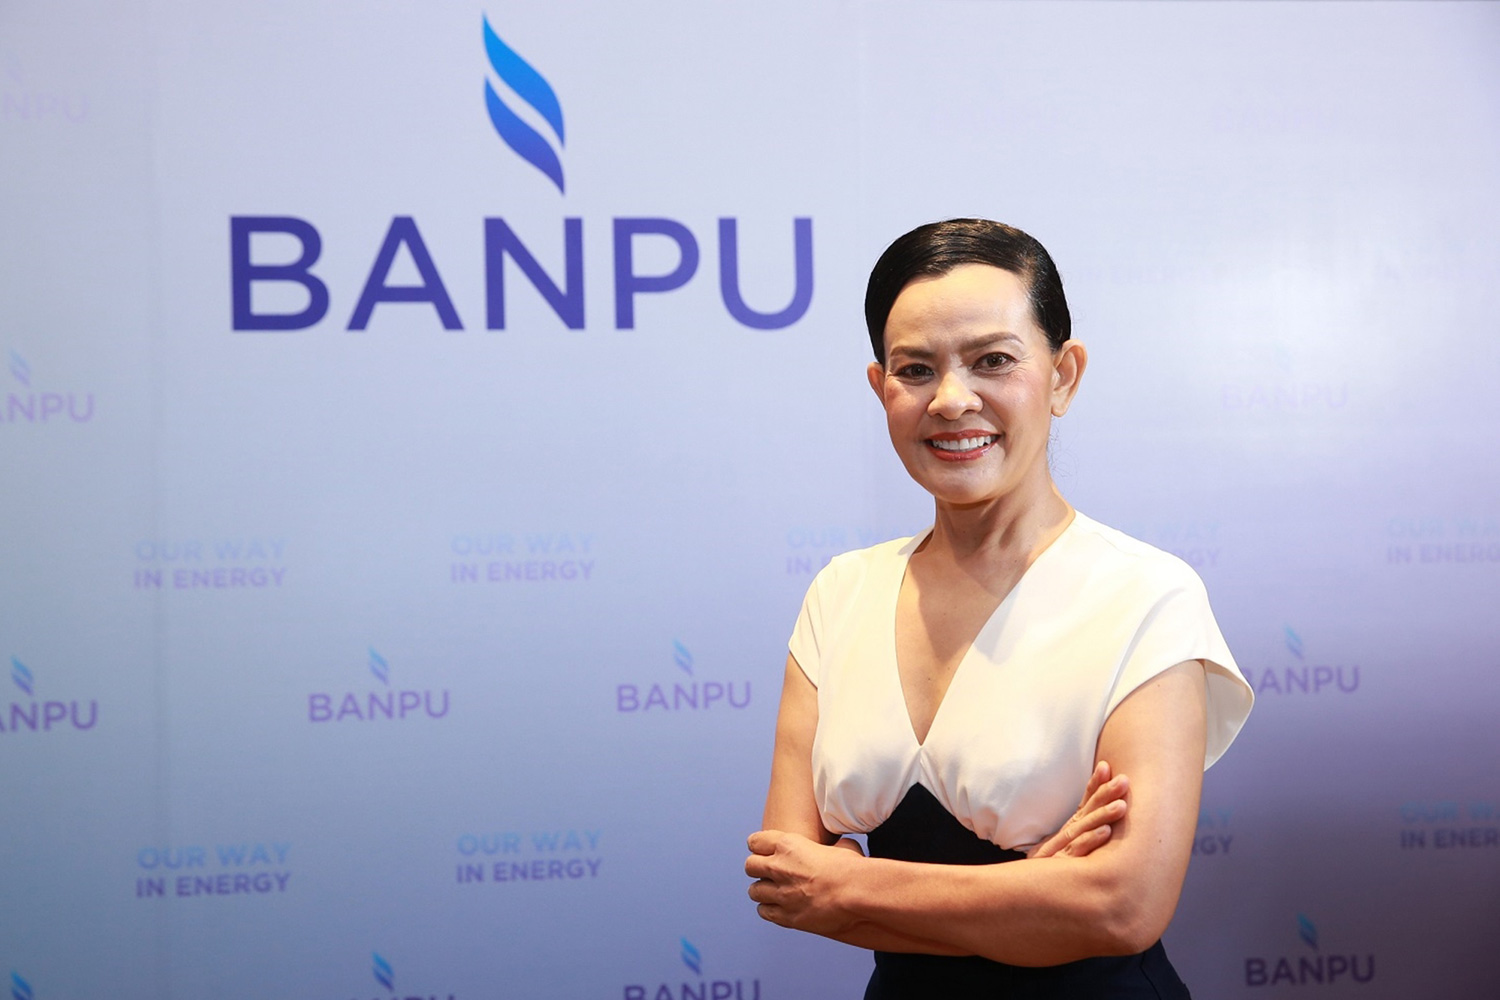 Banpu reaffirms its commitment in sustainability as DJSI member for 7th consecutive year